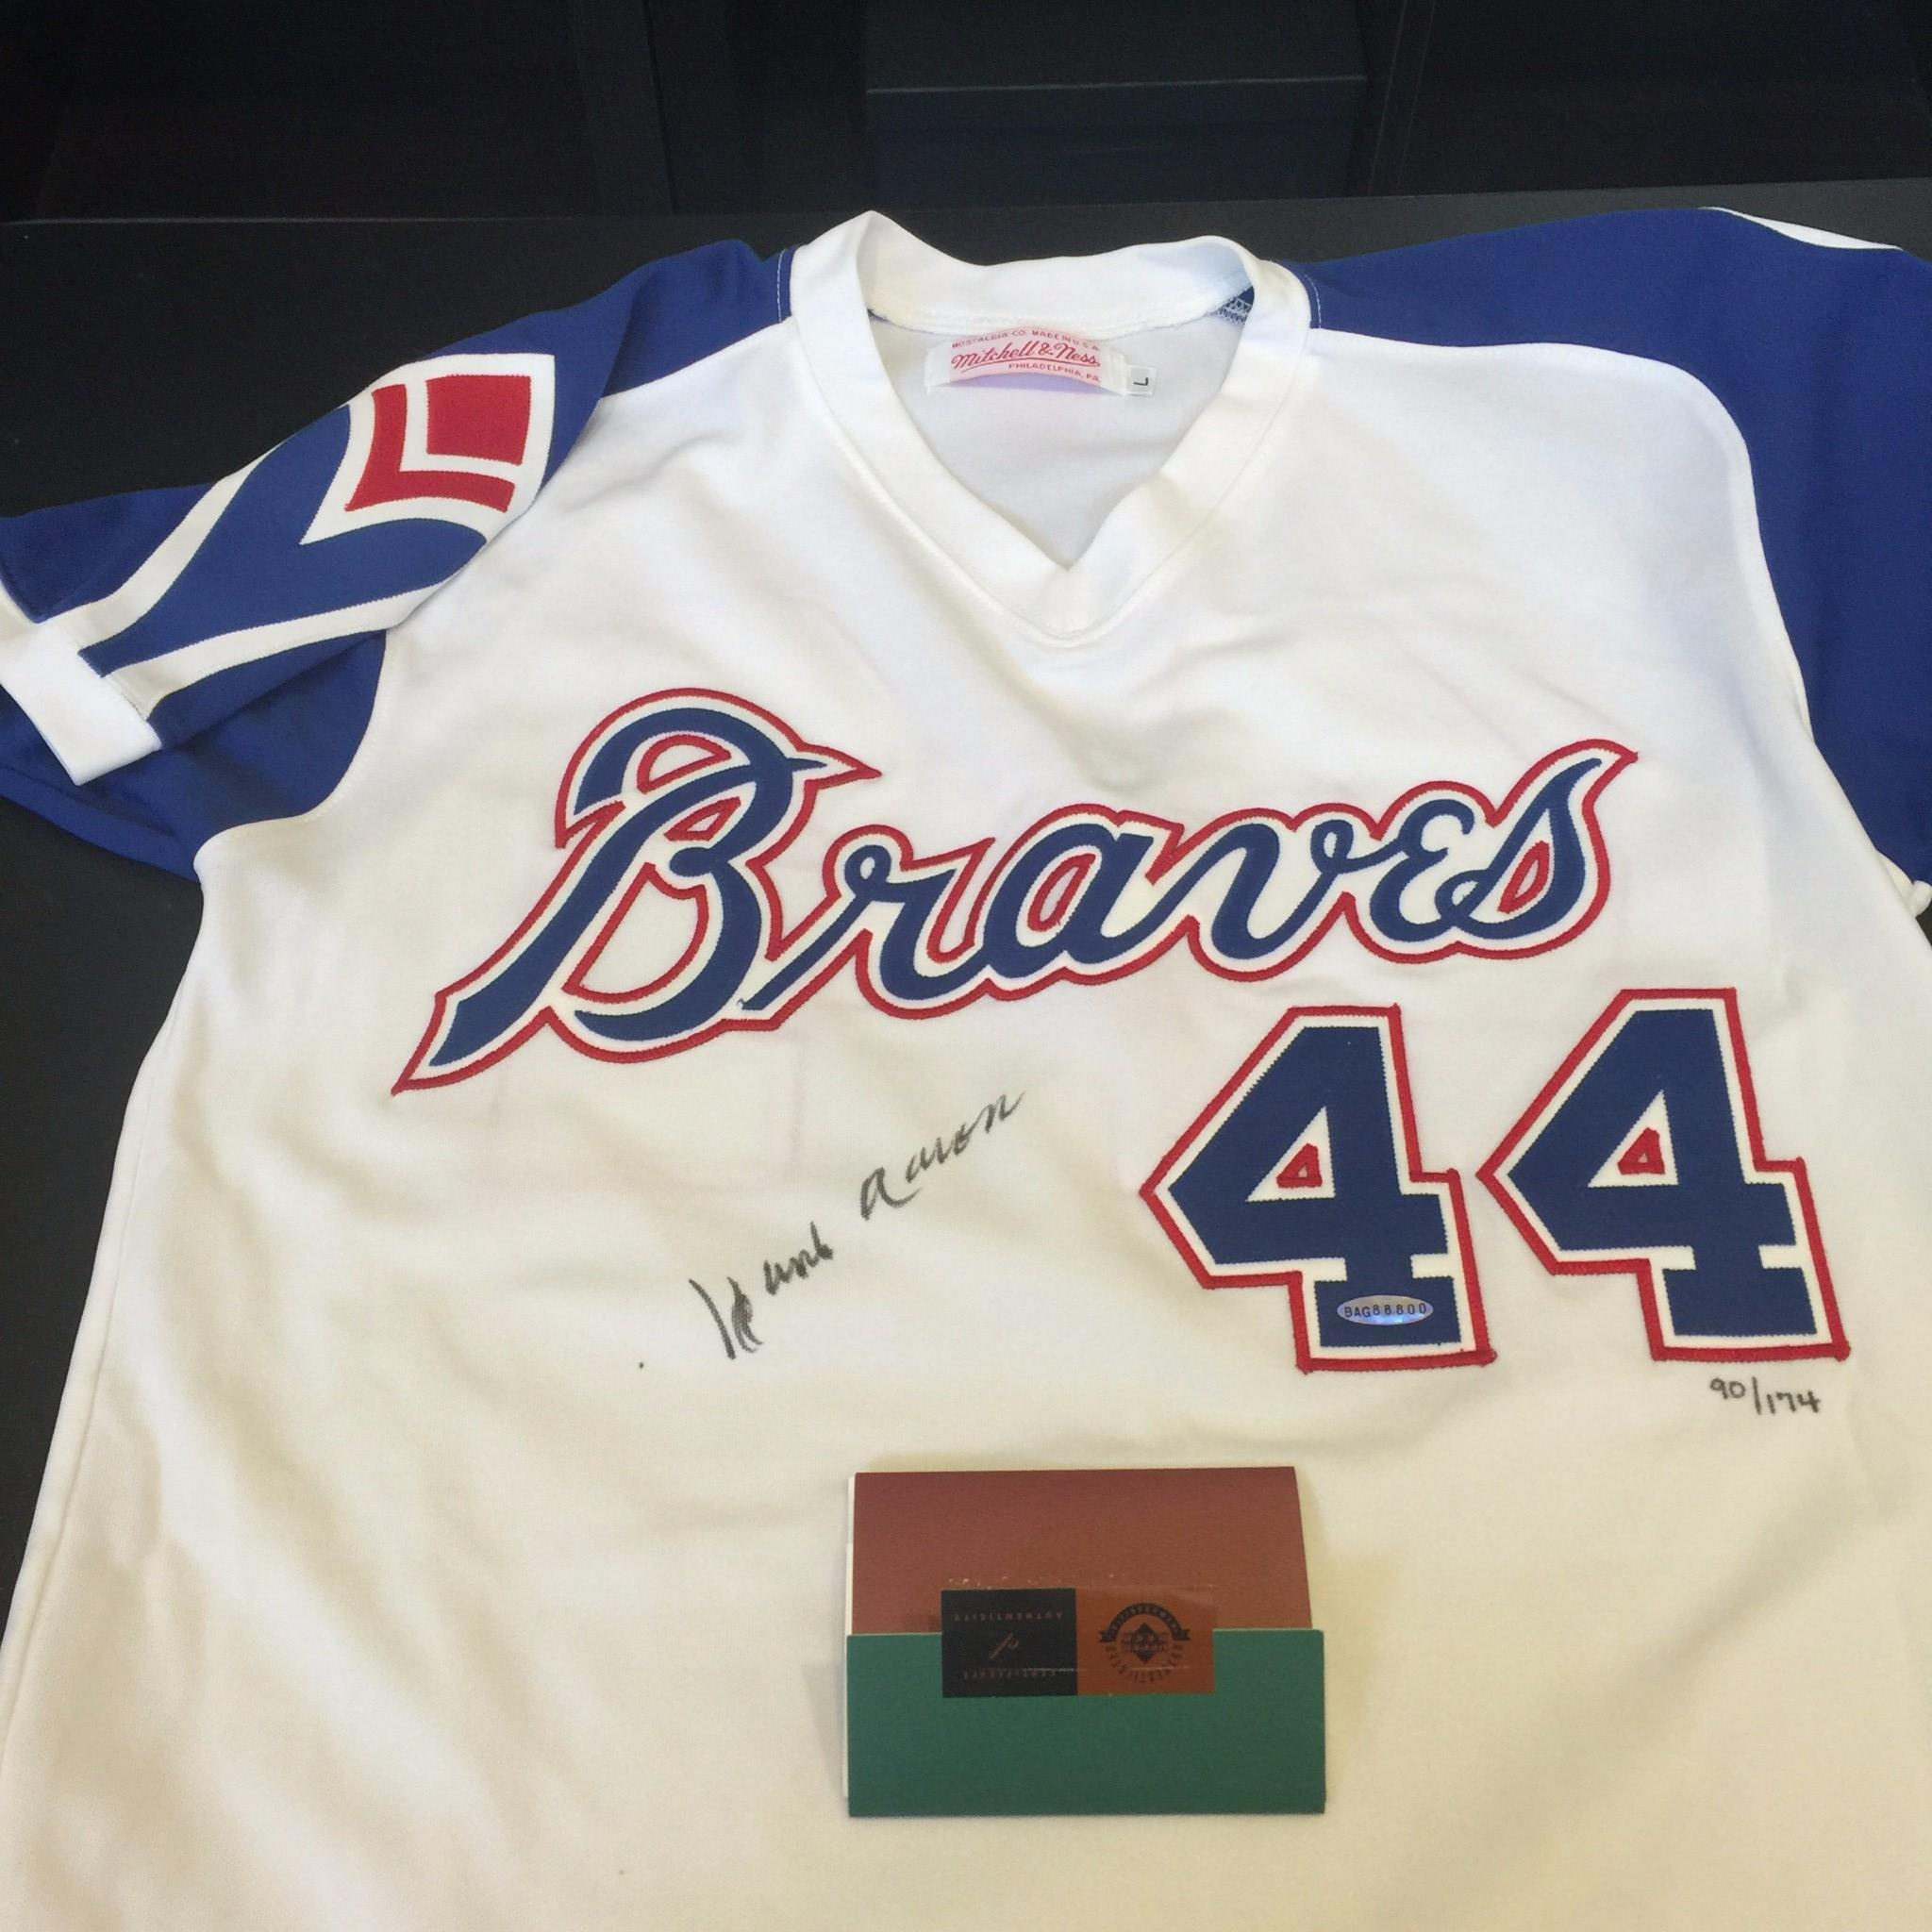 separation shoes 2a285 c6454 Details about Rare Hank Aaron Signed Authentic 1974 Atlanta Braves Jersey  Upper Deck UDA COA